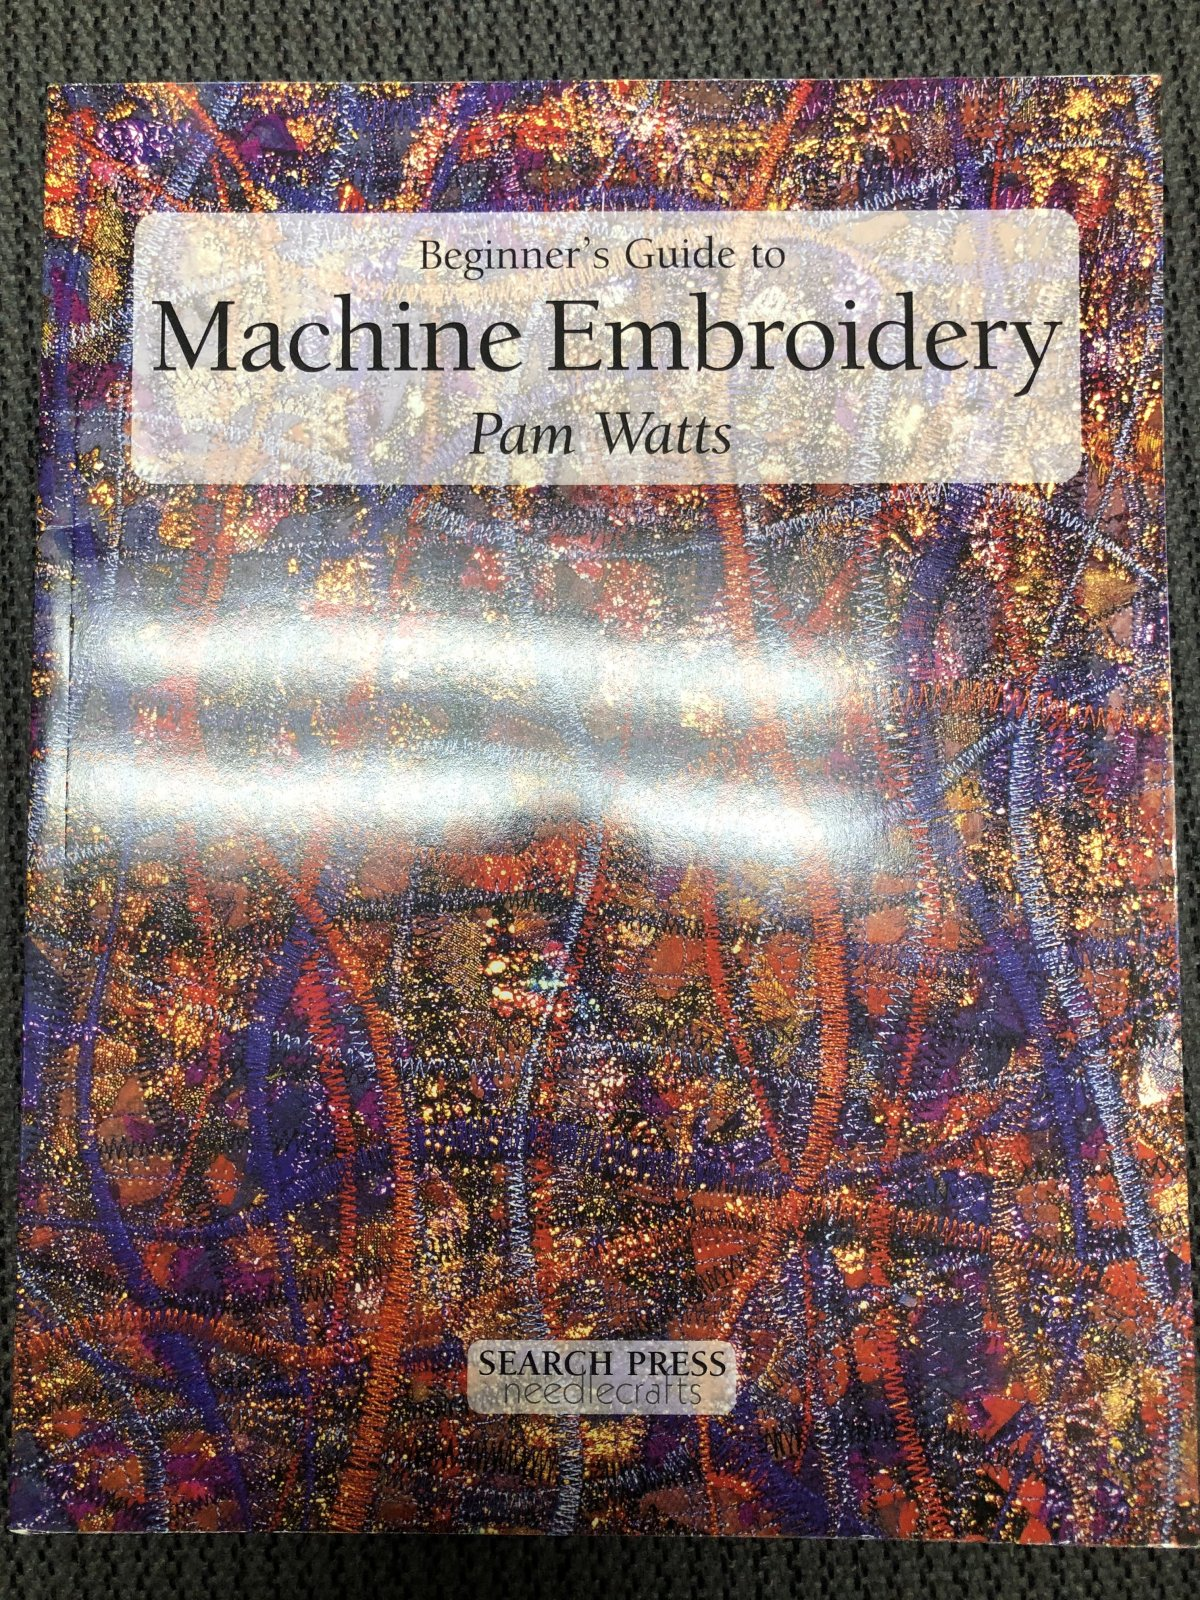 Beginner's Guide to Machine Embroidery